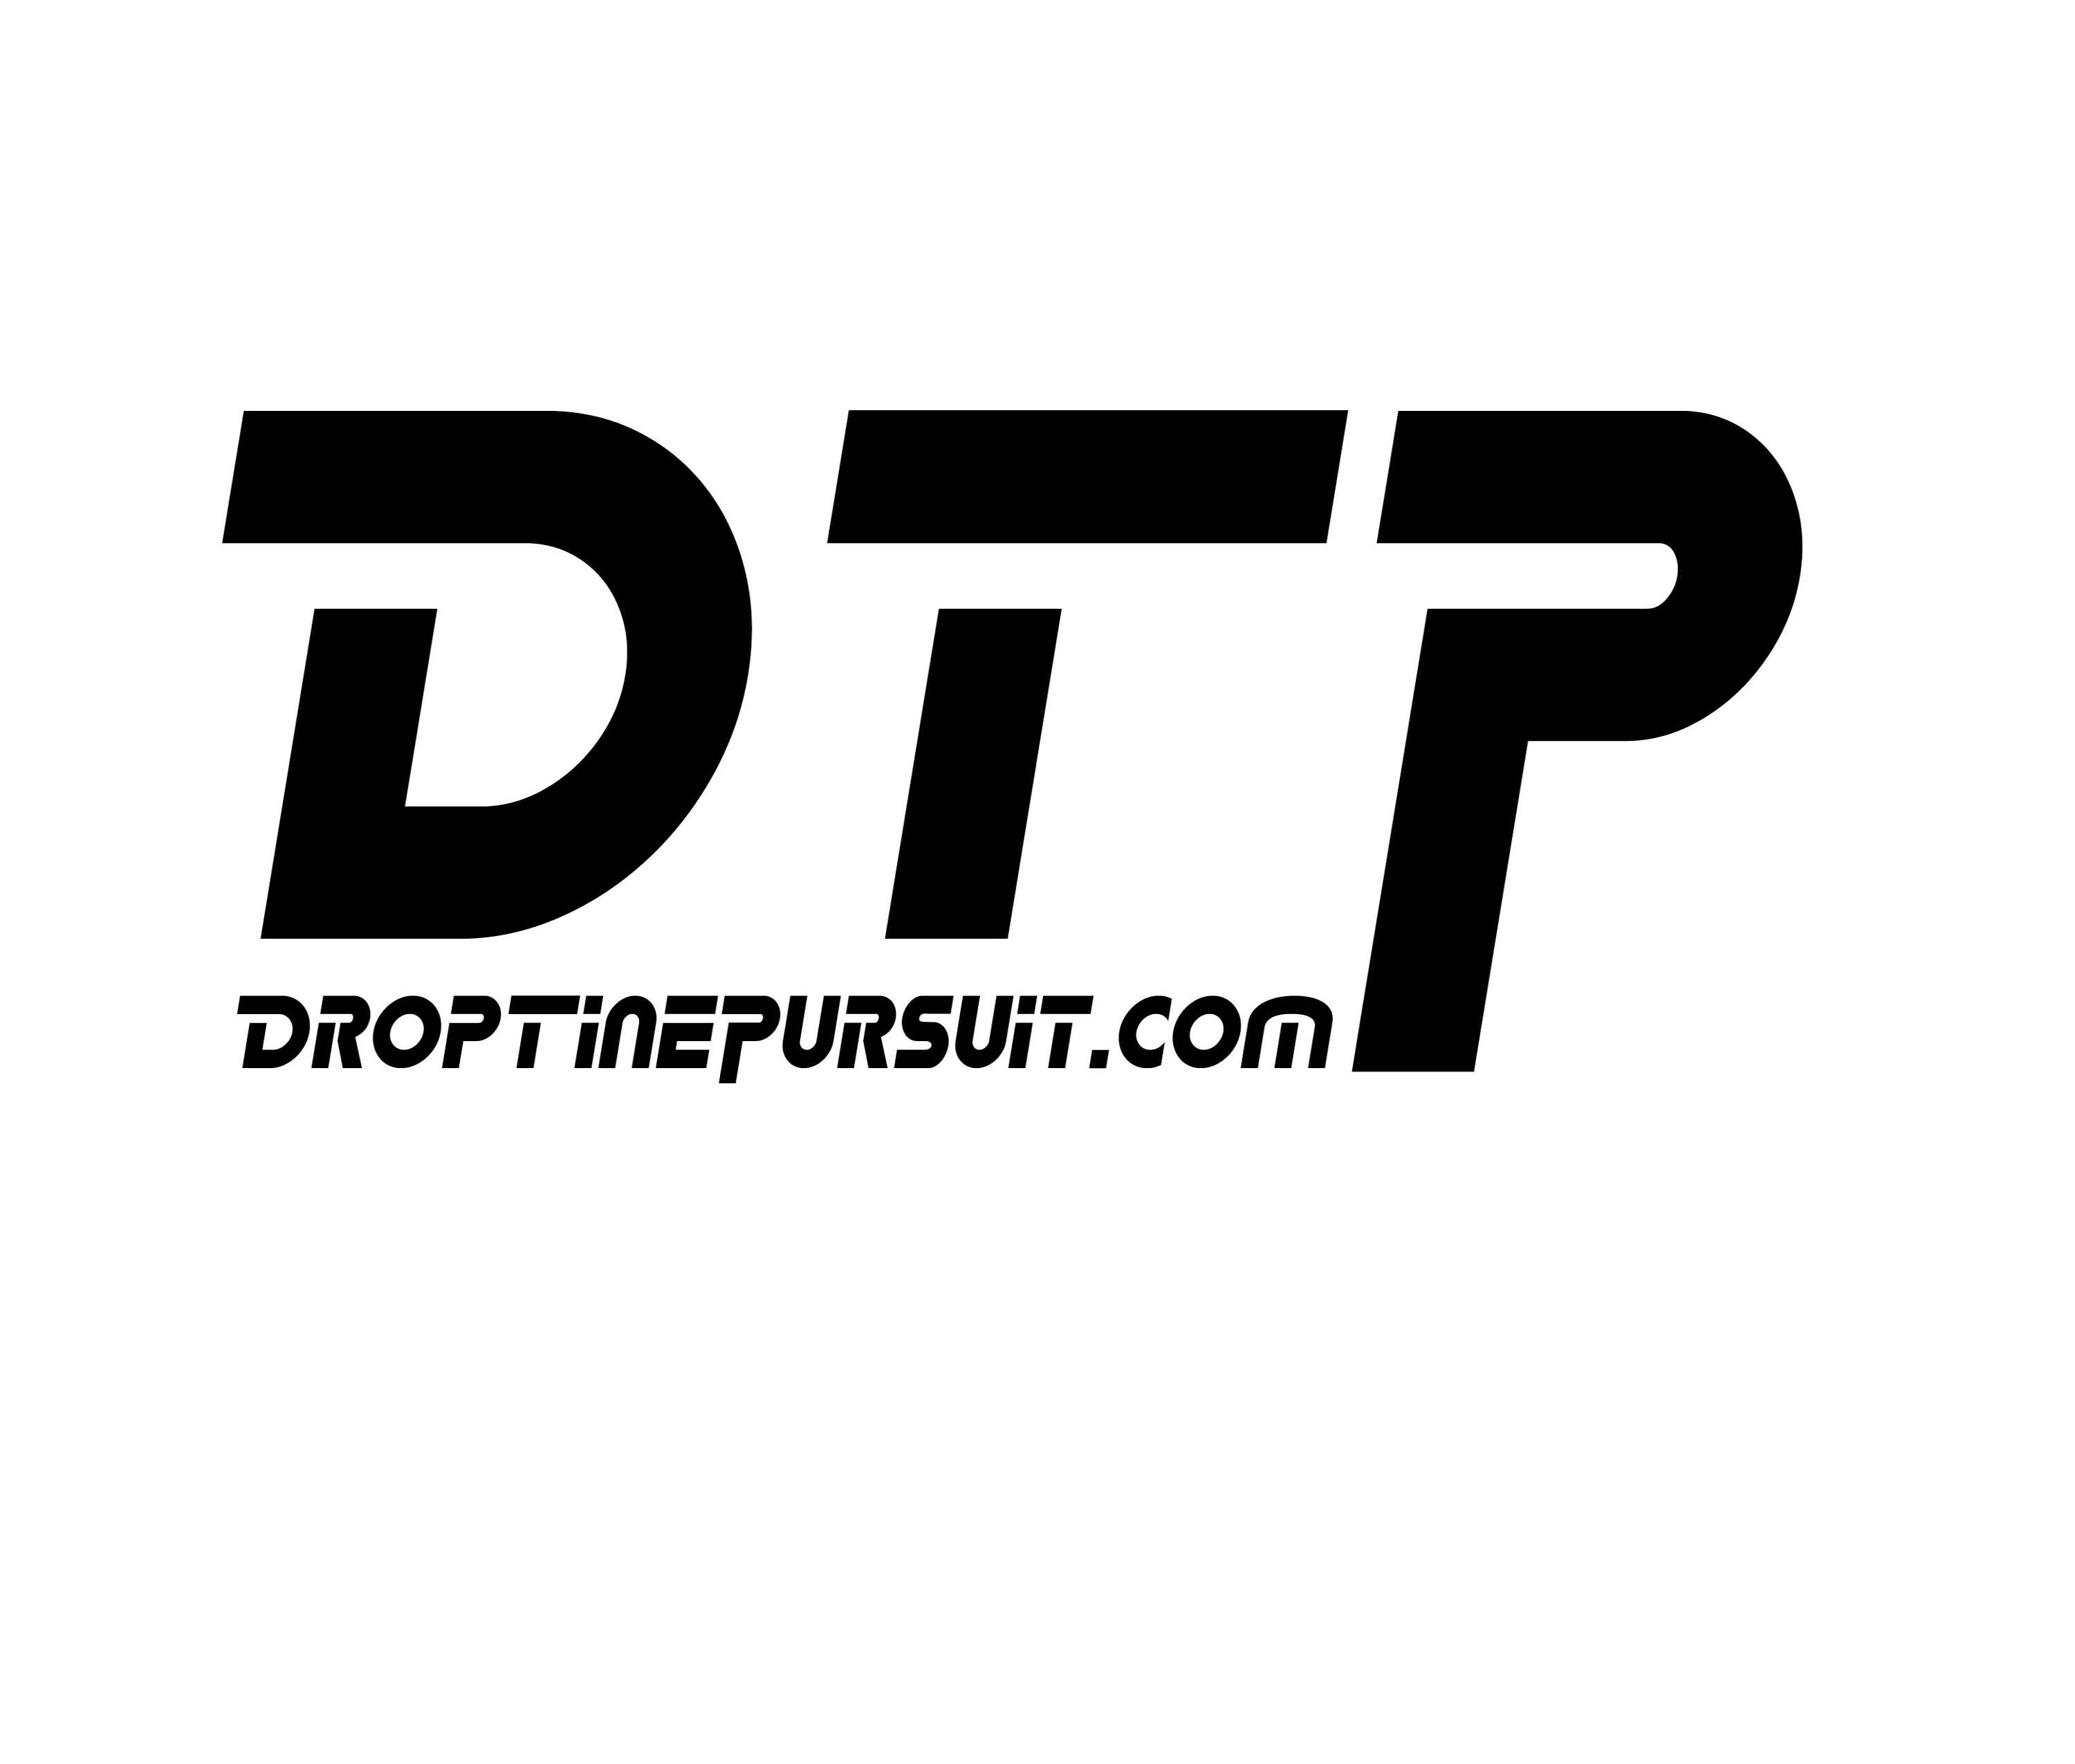 Drop Tine Pursuit is a new brand for hunters and outdoor enthusiasts.